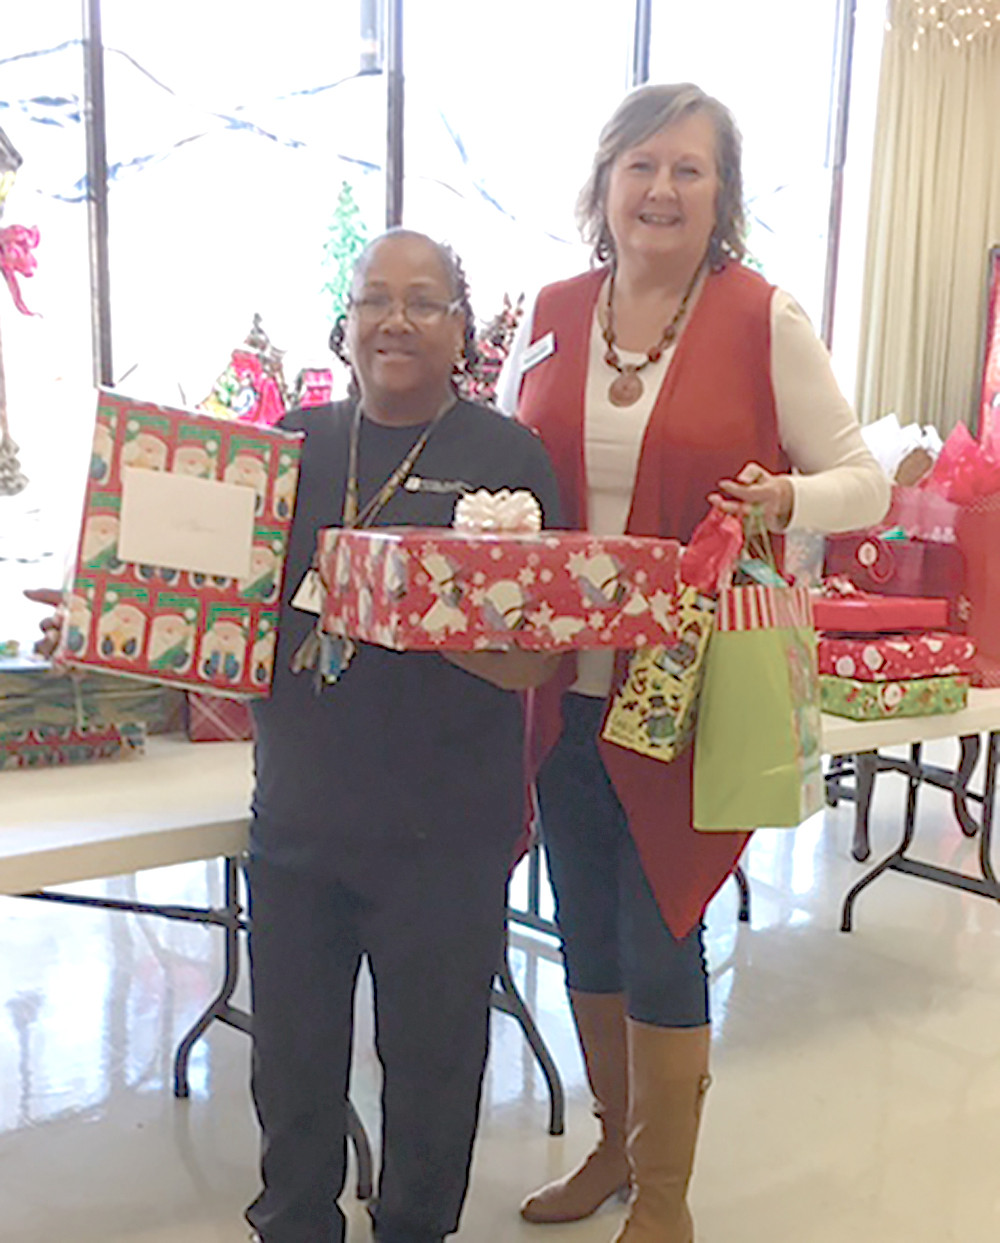 The Staff Senate at CSCC provided Christmas gifts to the residents at Bradley Healthcare and Rehabilitation. From left are Donna Martin, Bradley Healthcare and Rehab activities assistant, with CSCC Staff Senate Secretary Cindy Dawson.